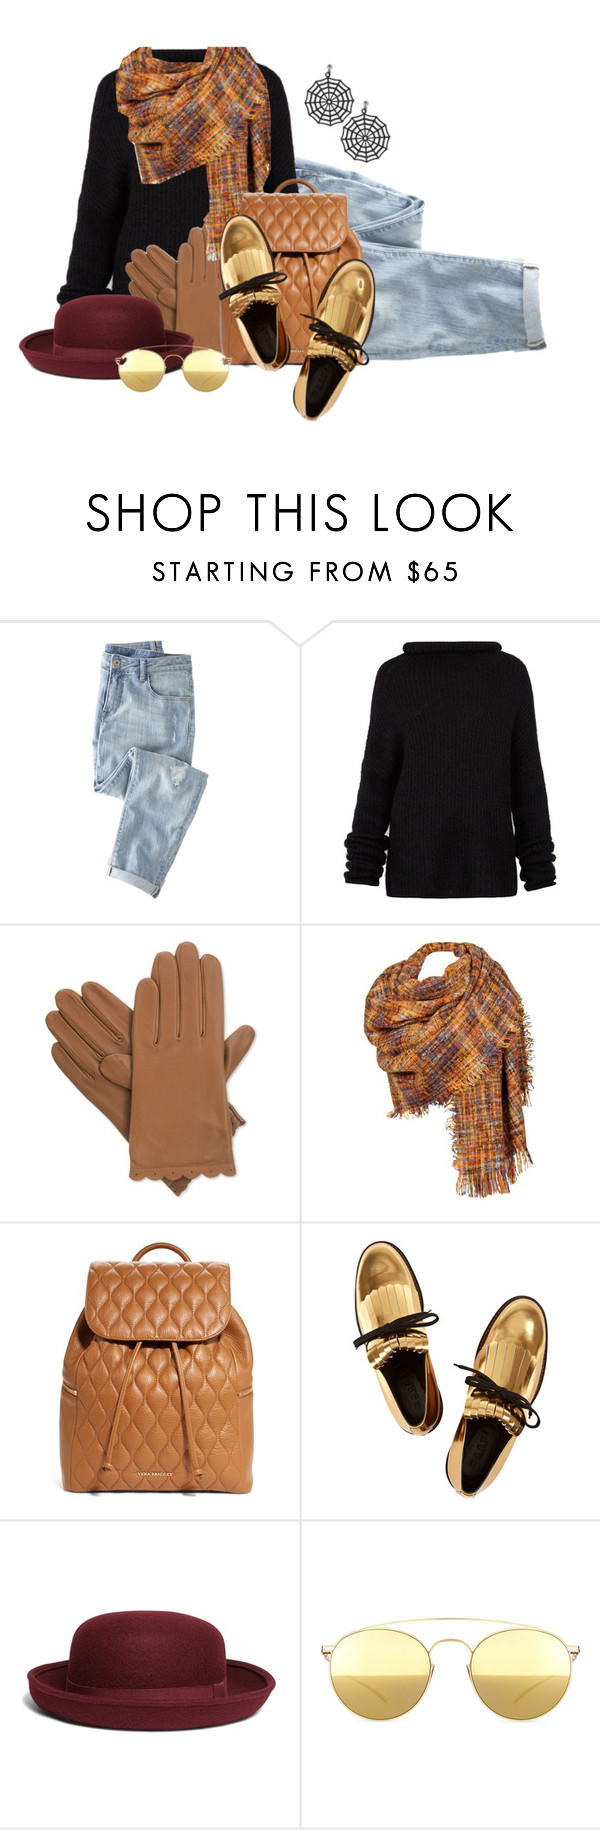 """Casual and stylish in black"" by no-where-girl ❤ liked on Polyvore featuring Wrap, Haider Ackermann, Isotoner, Black Rivet, Vera Bradley, Marni, Brooks Brothers and Mykita"